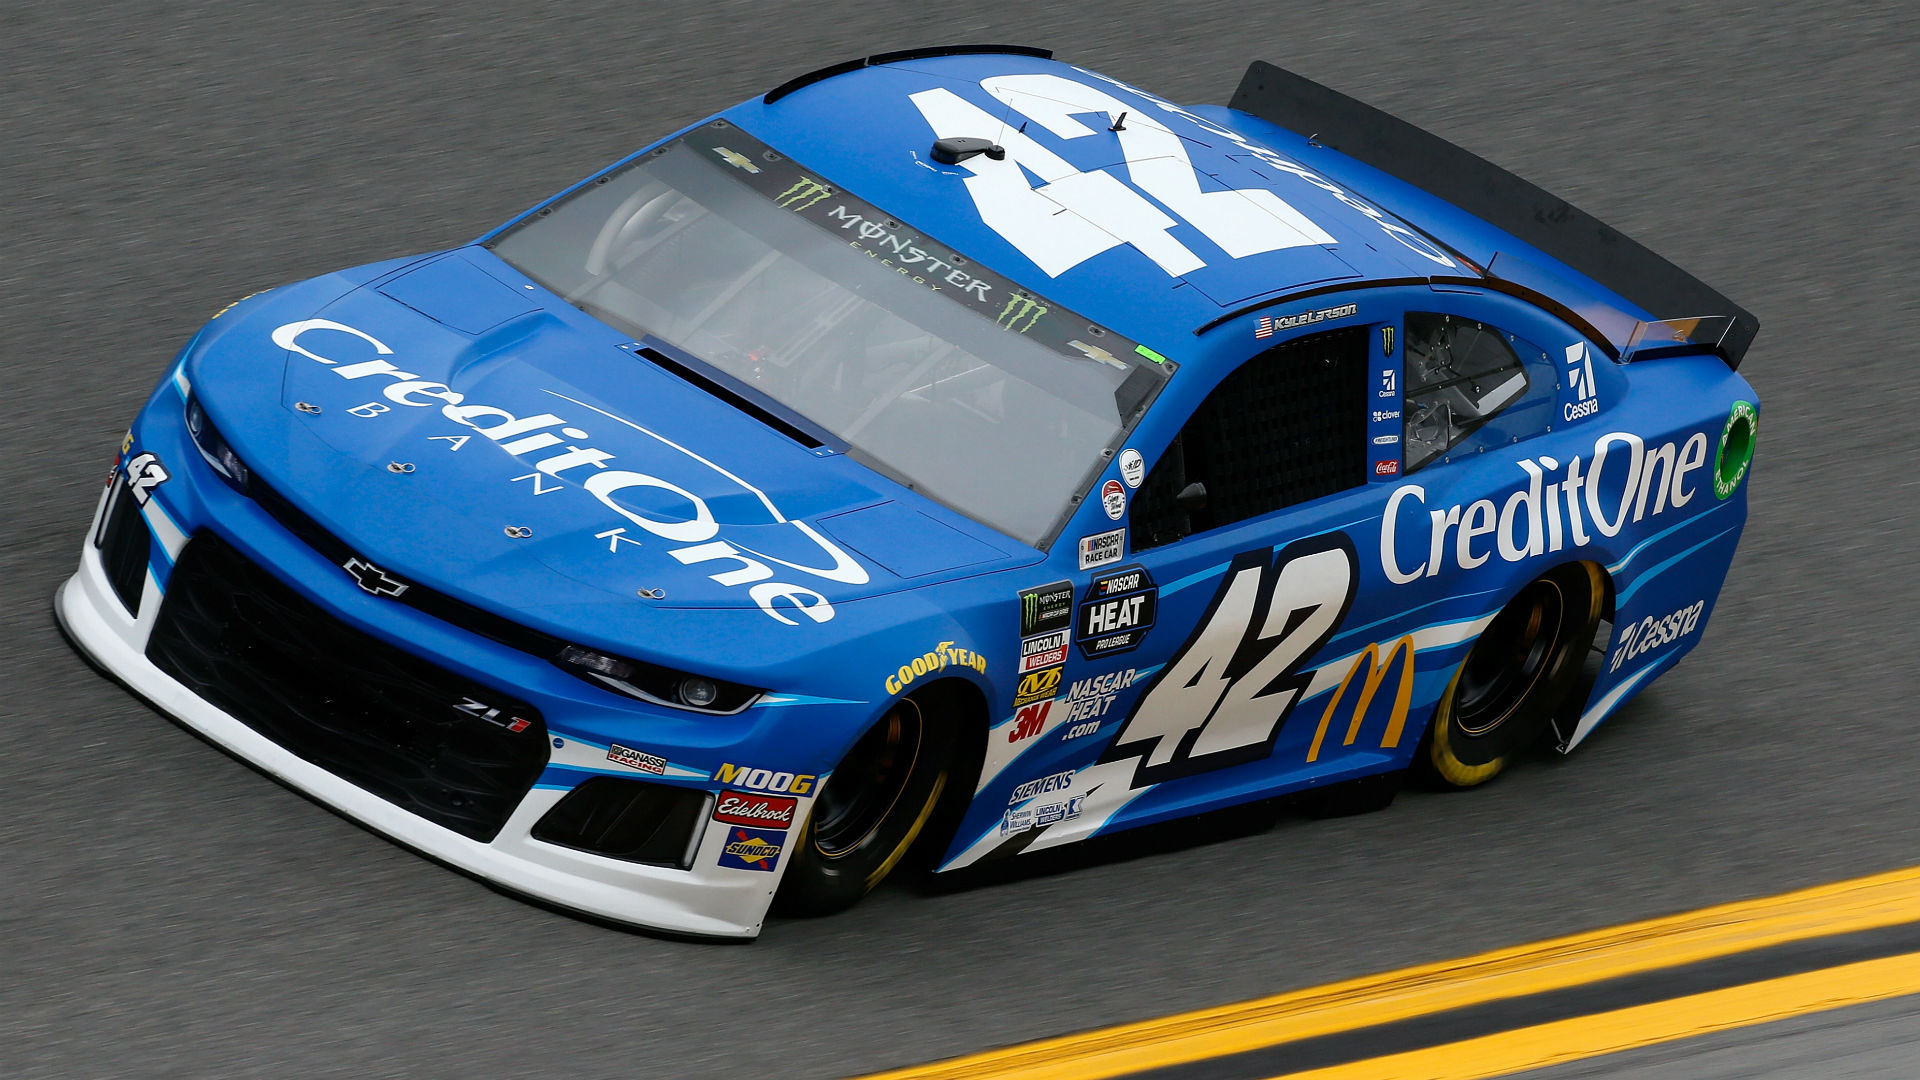 Daytona 500 Starting Lineup Adjusted As Kyle Larson Others Move To Rear Sporting News